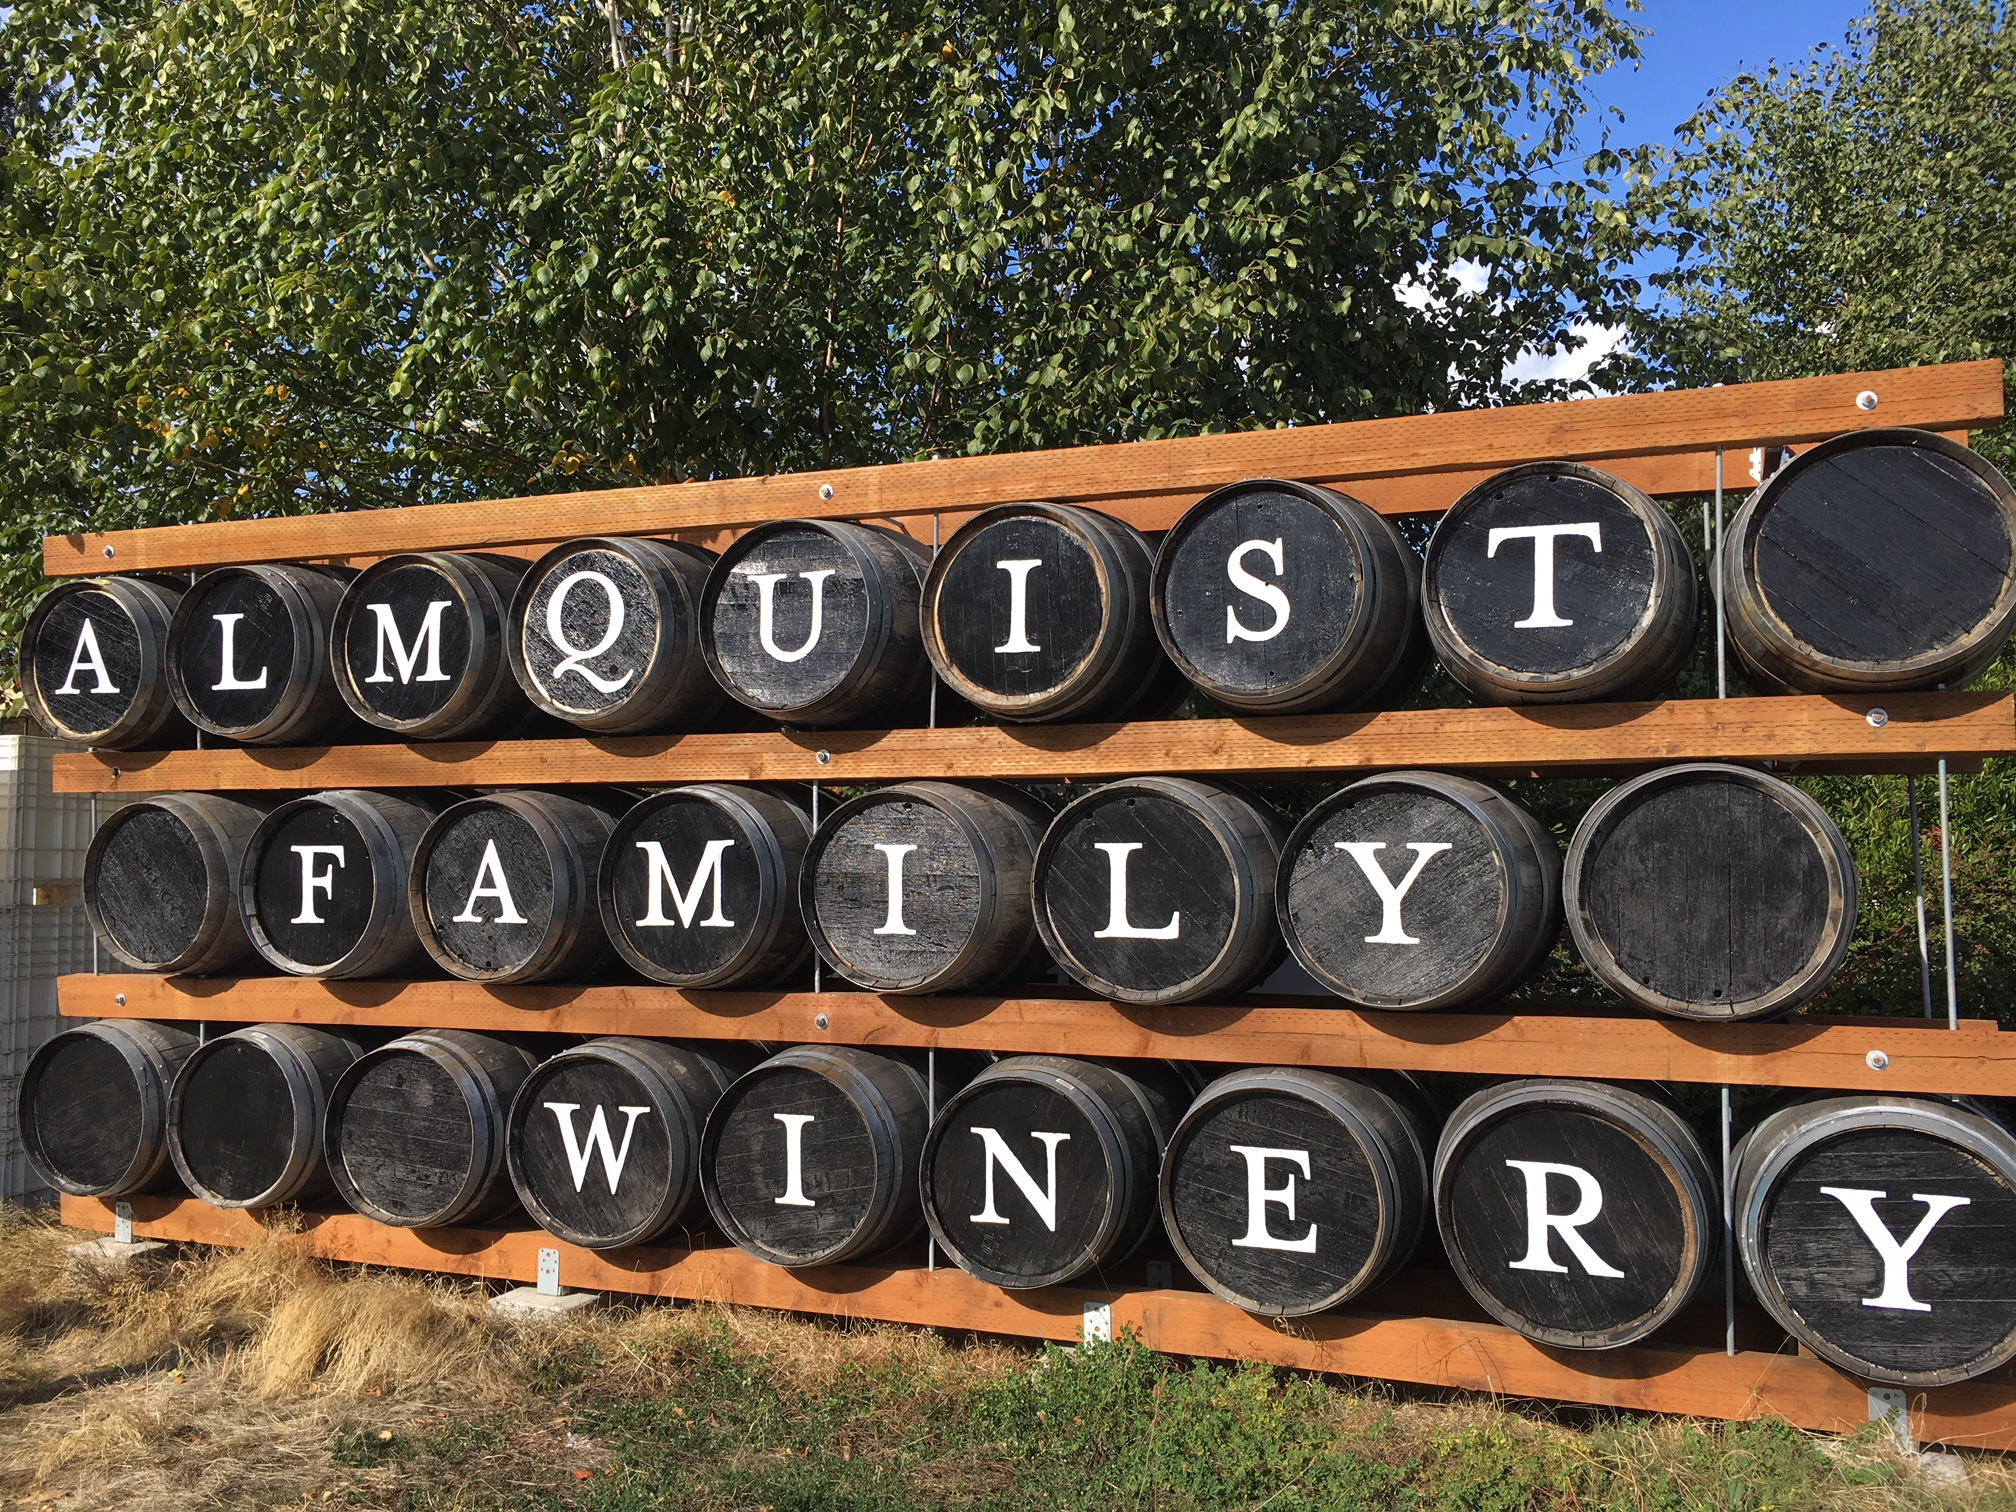 Almquist Family Winery